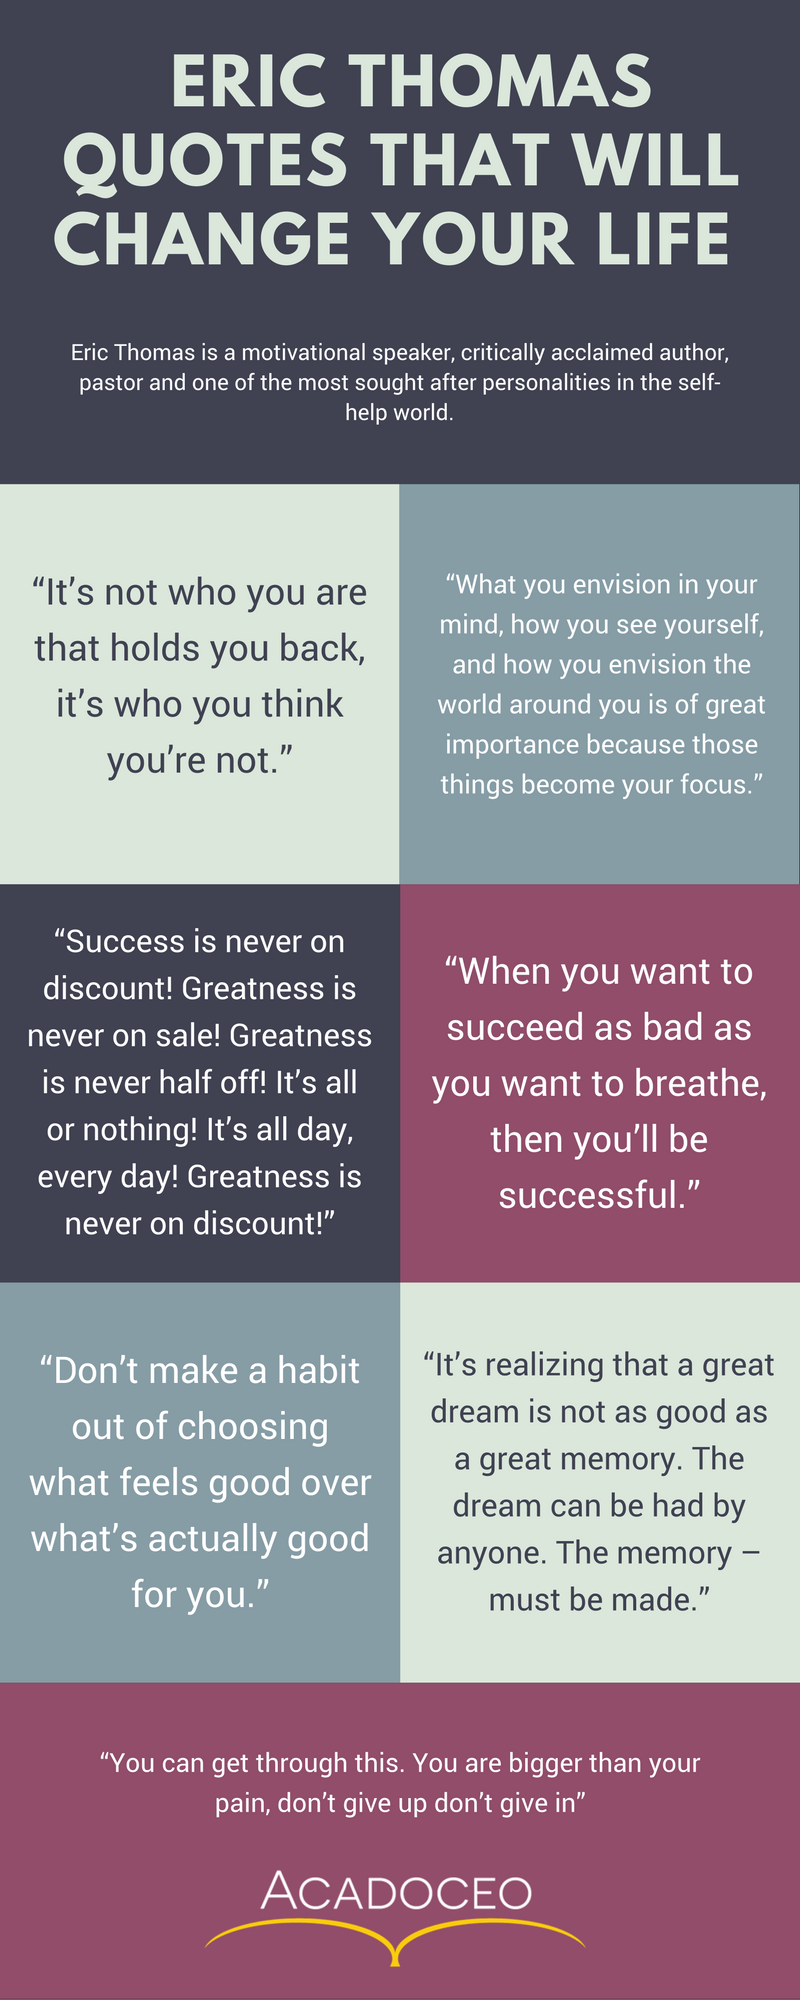 eric thomas quotes that will change your life quotes eric thomas quotes that will change your life quotes motivation